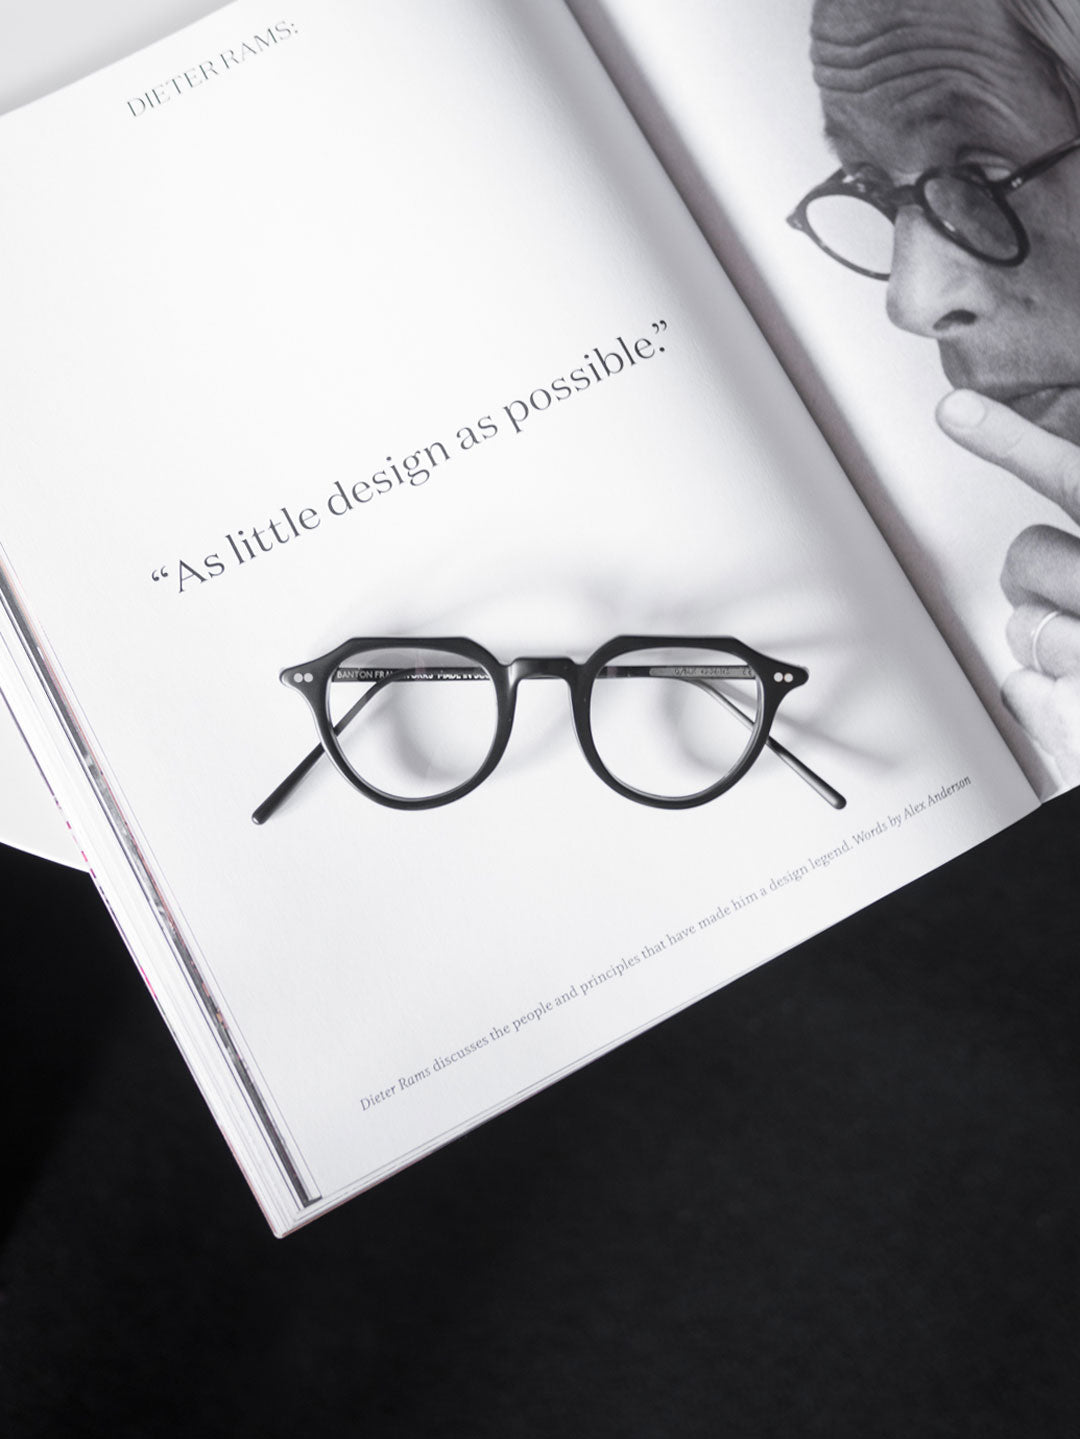 Aerial view of Dieter Rams glasses tribute spectacle frame upon white table and magazines